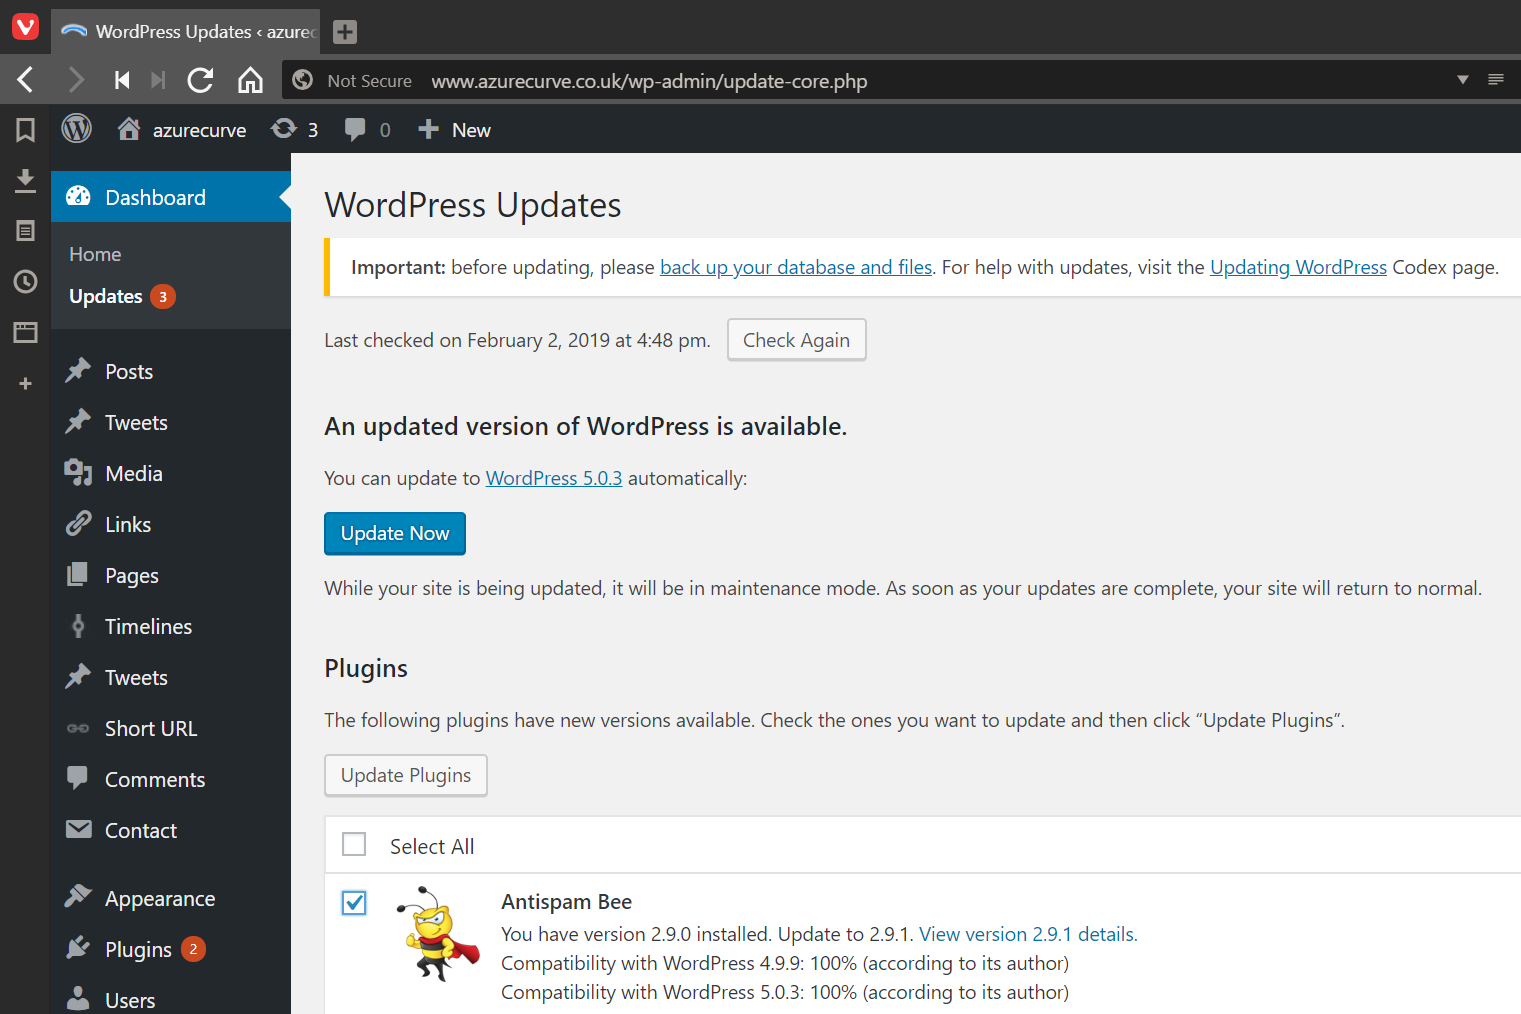 WordPress dashboard showing Update Now and Update Plugins buttons